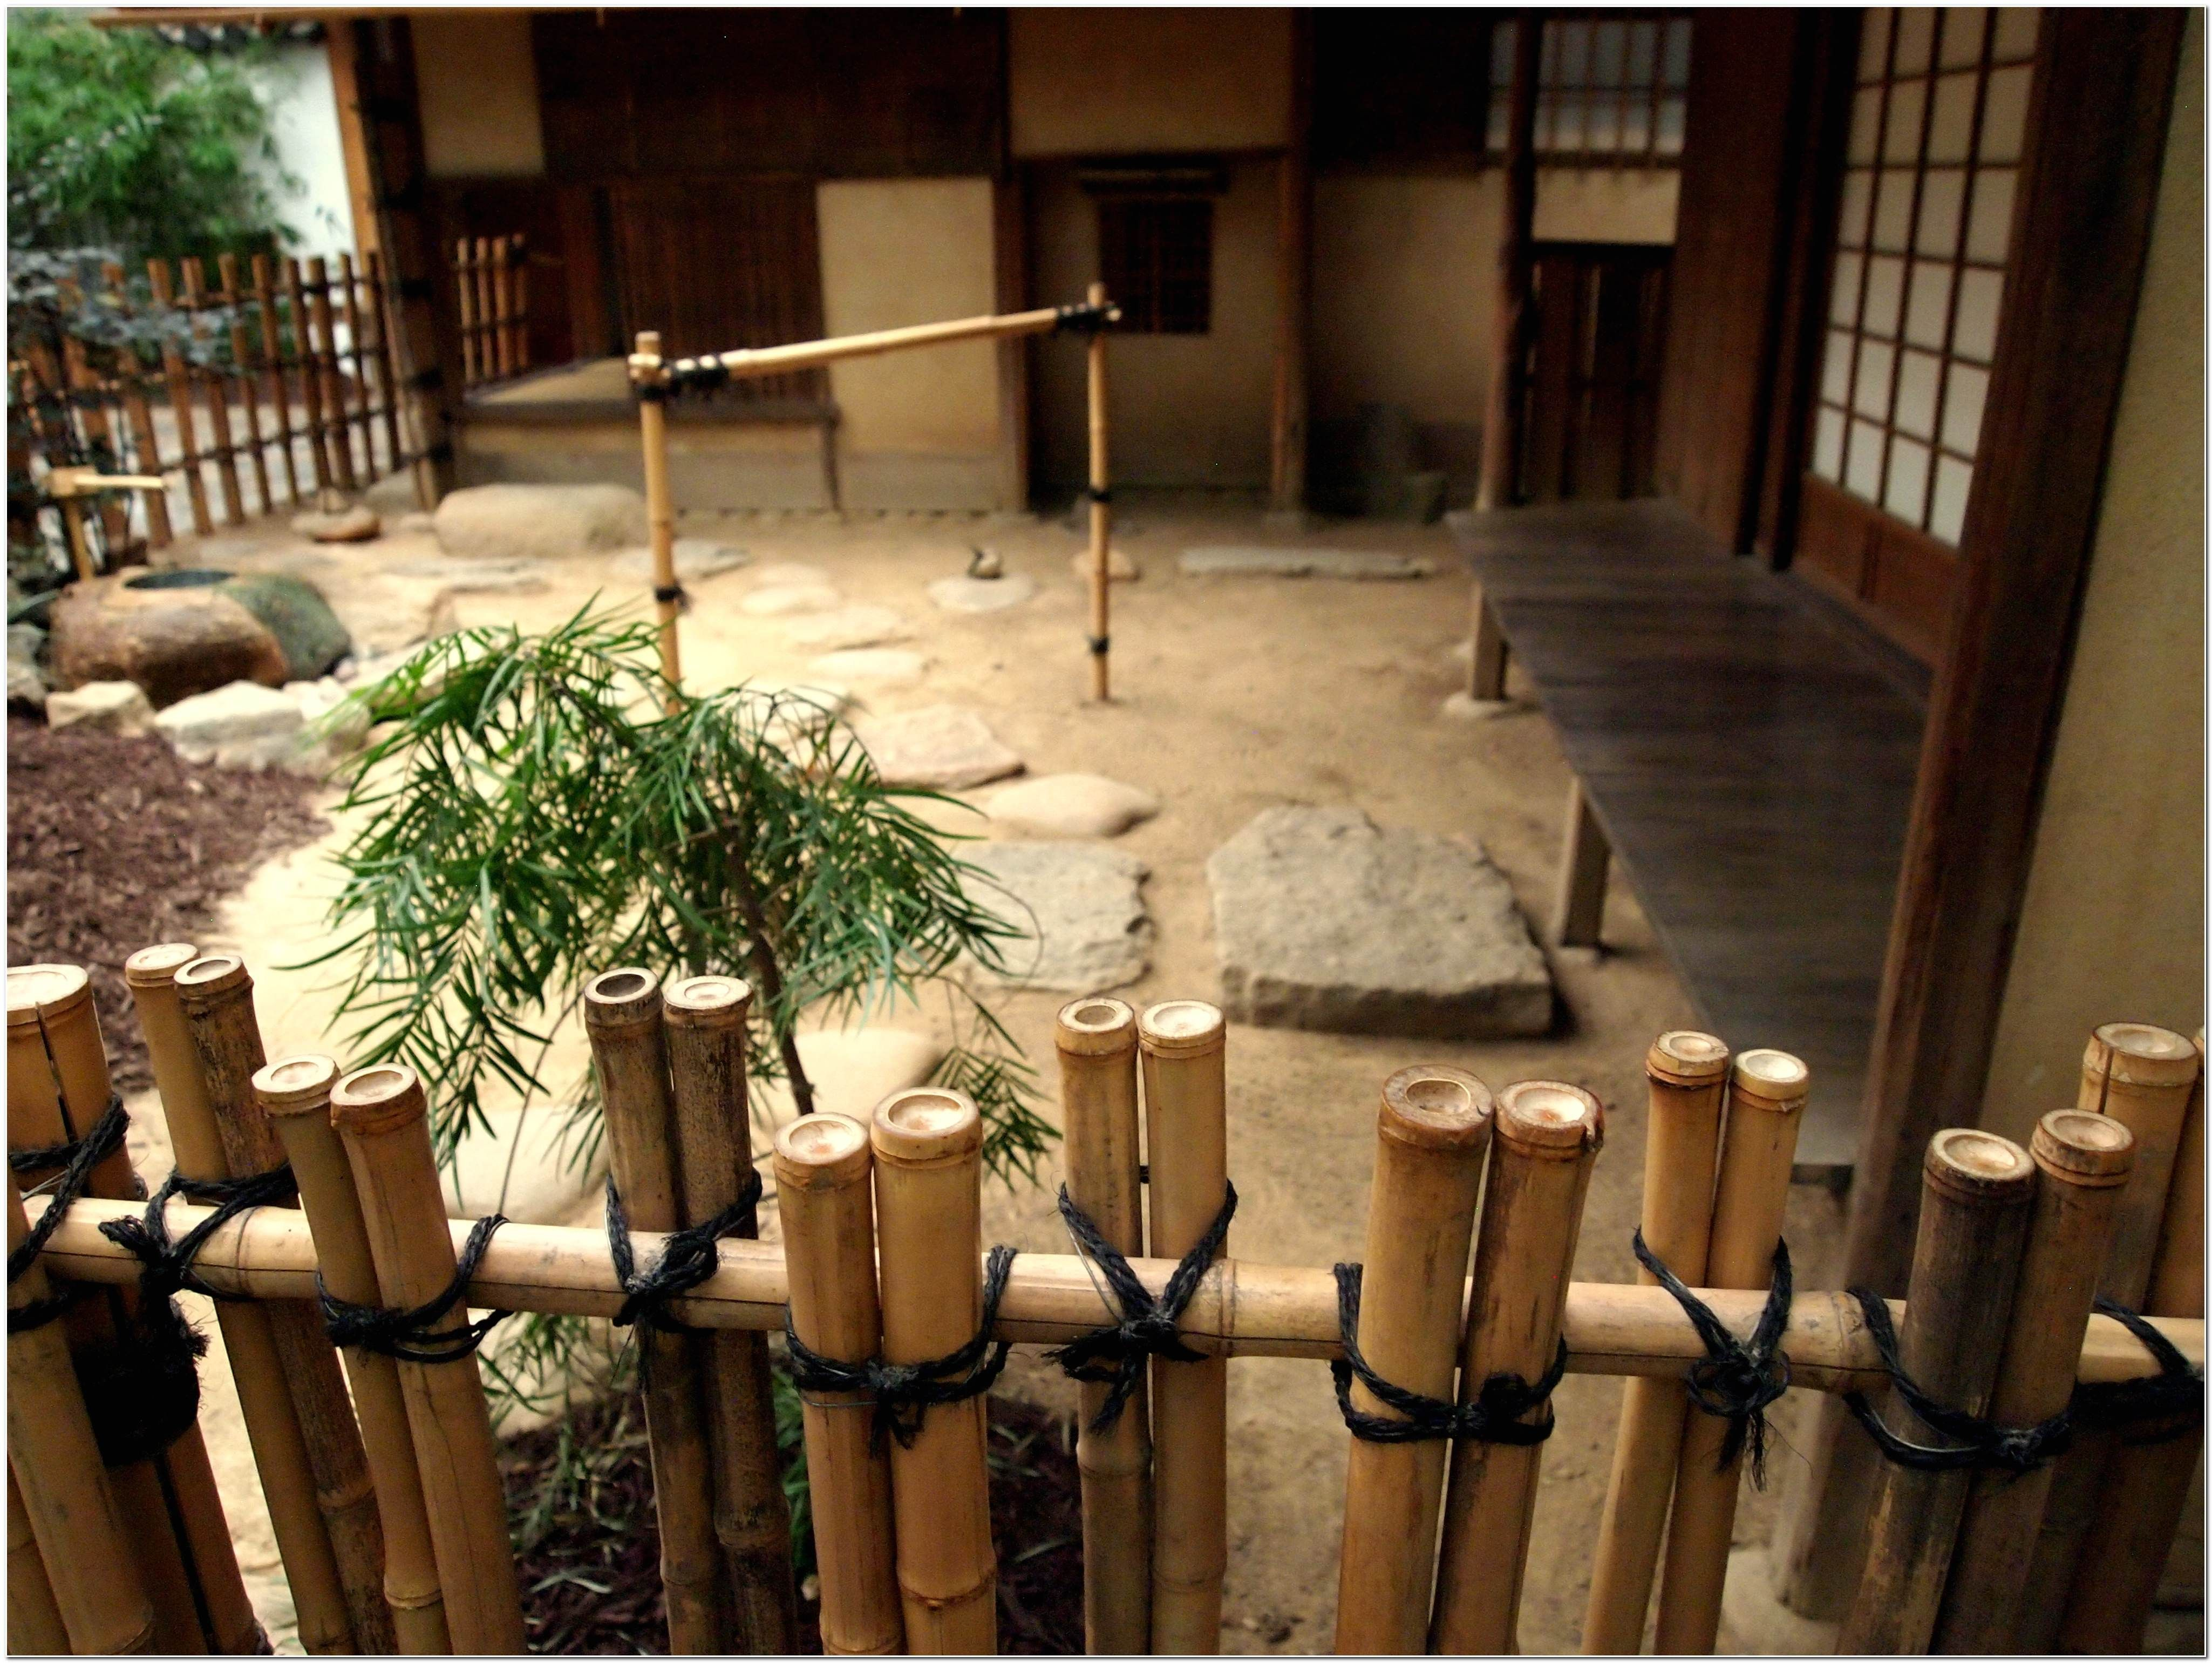 Outdoor Bamboo Fencing Ideas For Japanese Garden Diy Fence Aesthetic